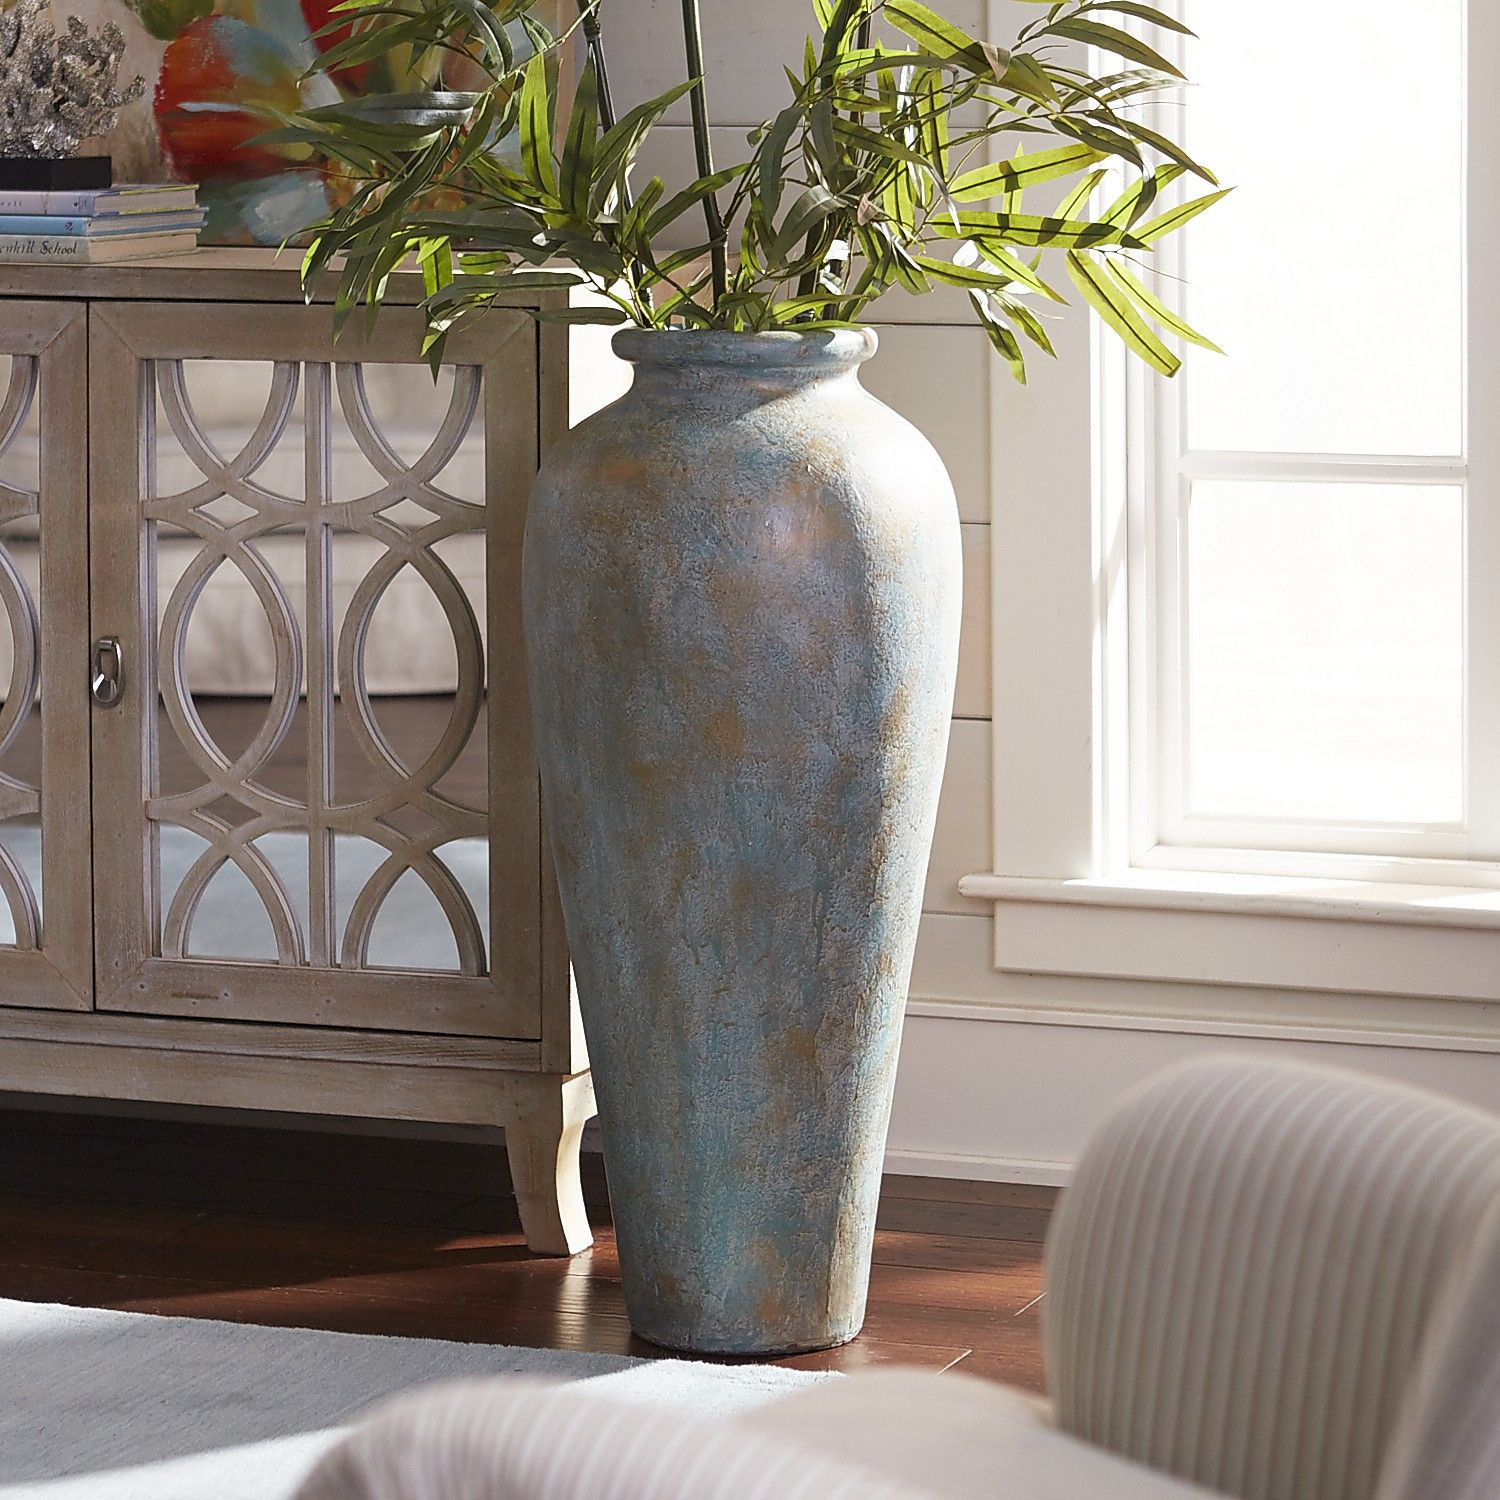 extra large floor vases cheap of blue green patina urn floor vase products pinterest flooring throughout blue green patina urn floor vase